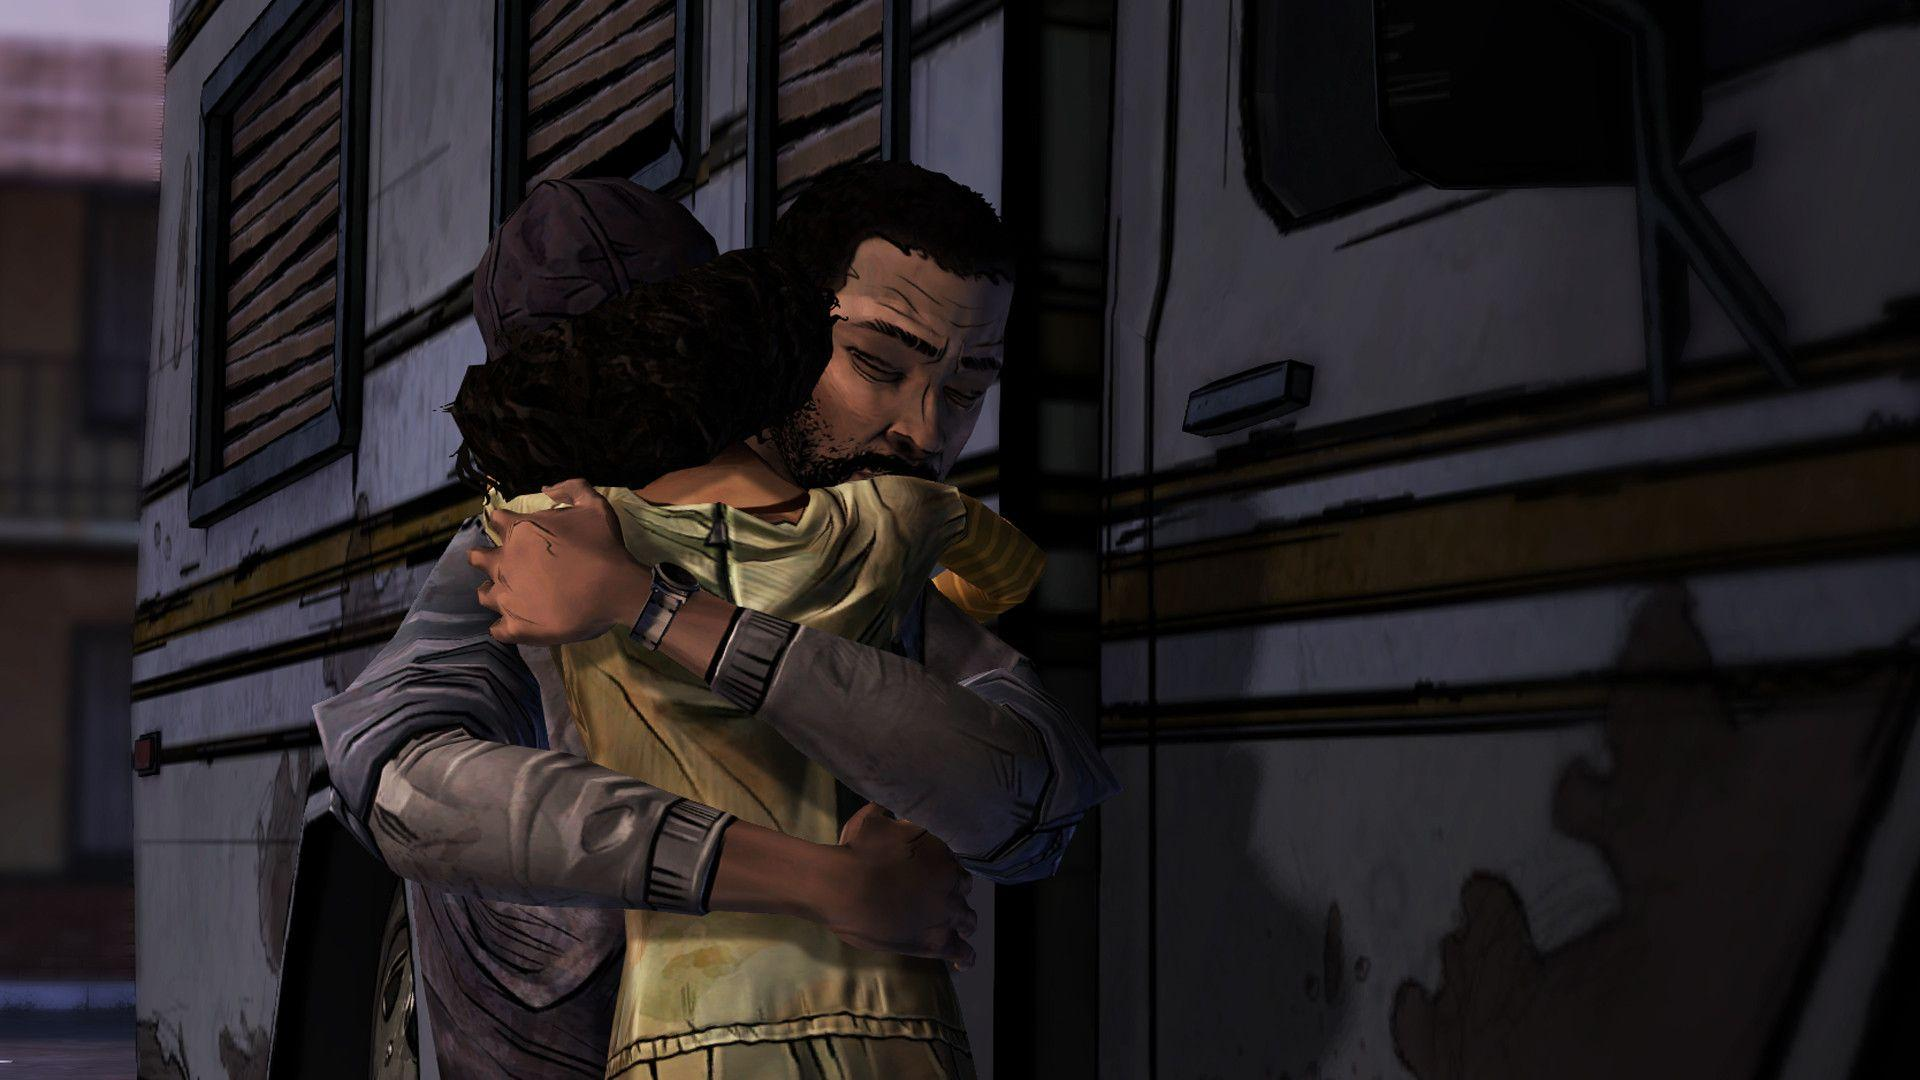 Image For > Walking Dead Game Iphone Wallpapers